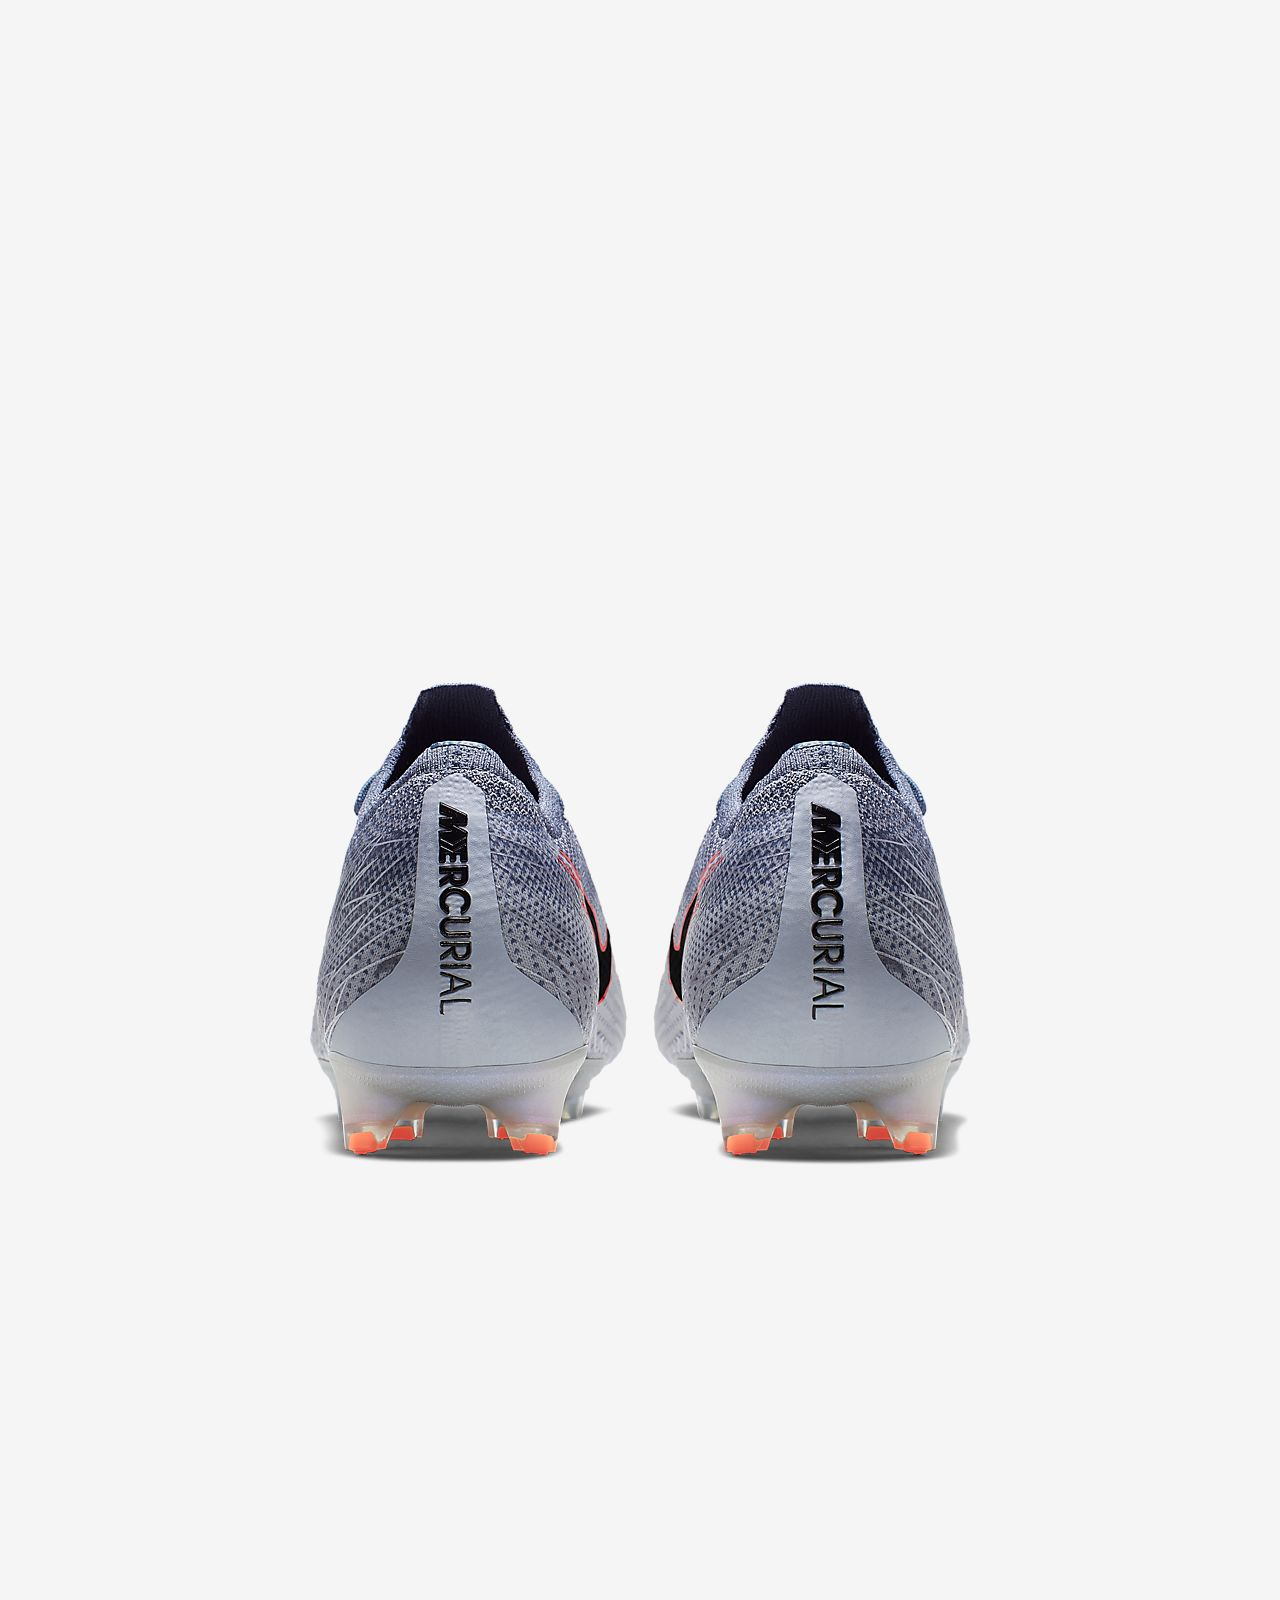 05a4a88fe Nike Vapor 12 Elite FG Firm-Ground Soccer Cleat. Nike.com